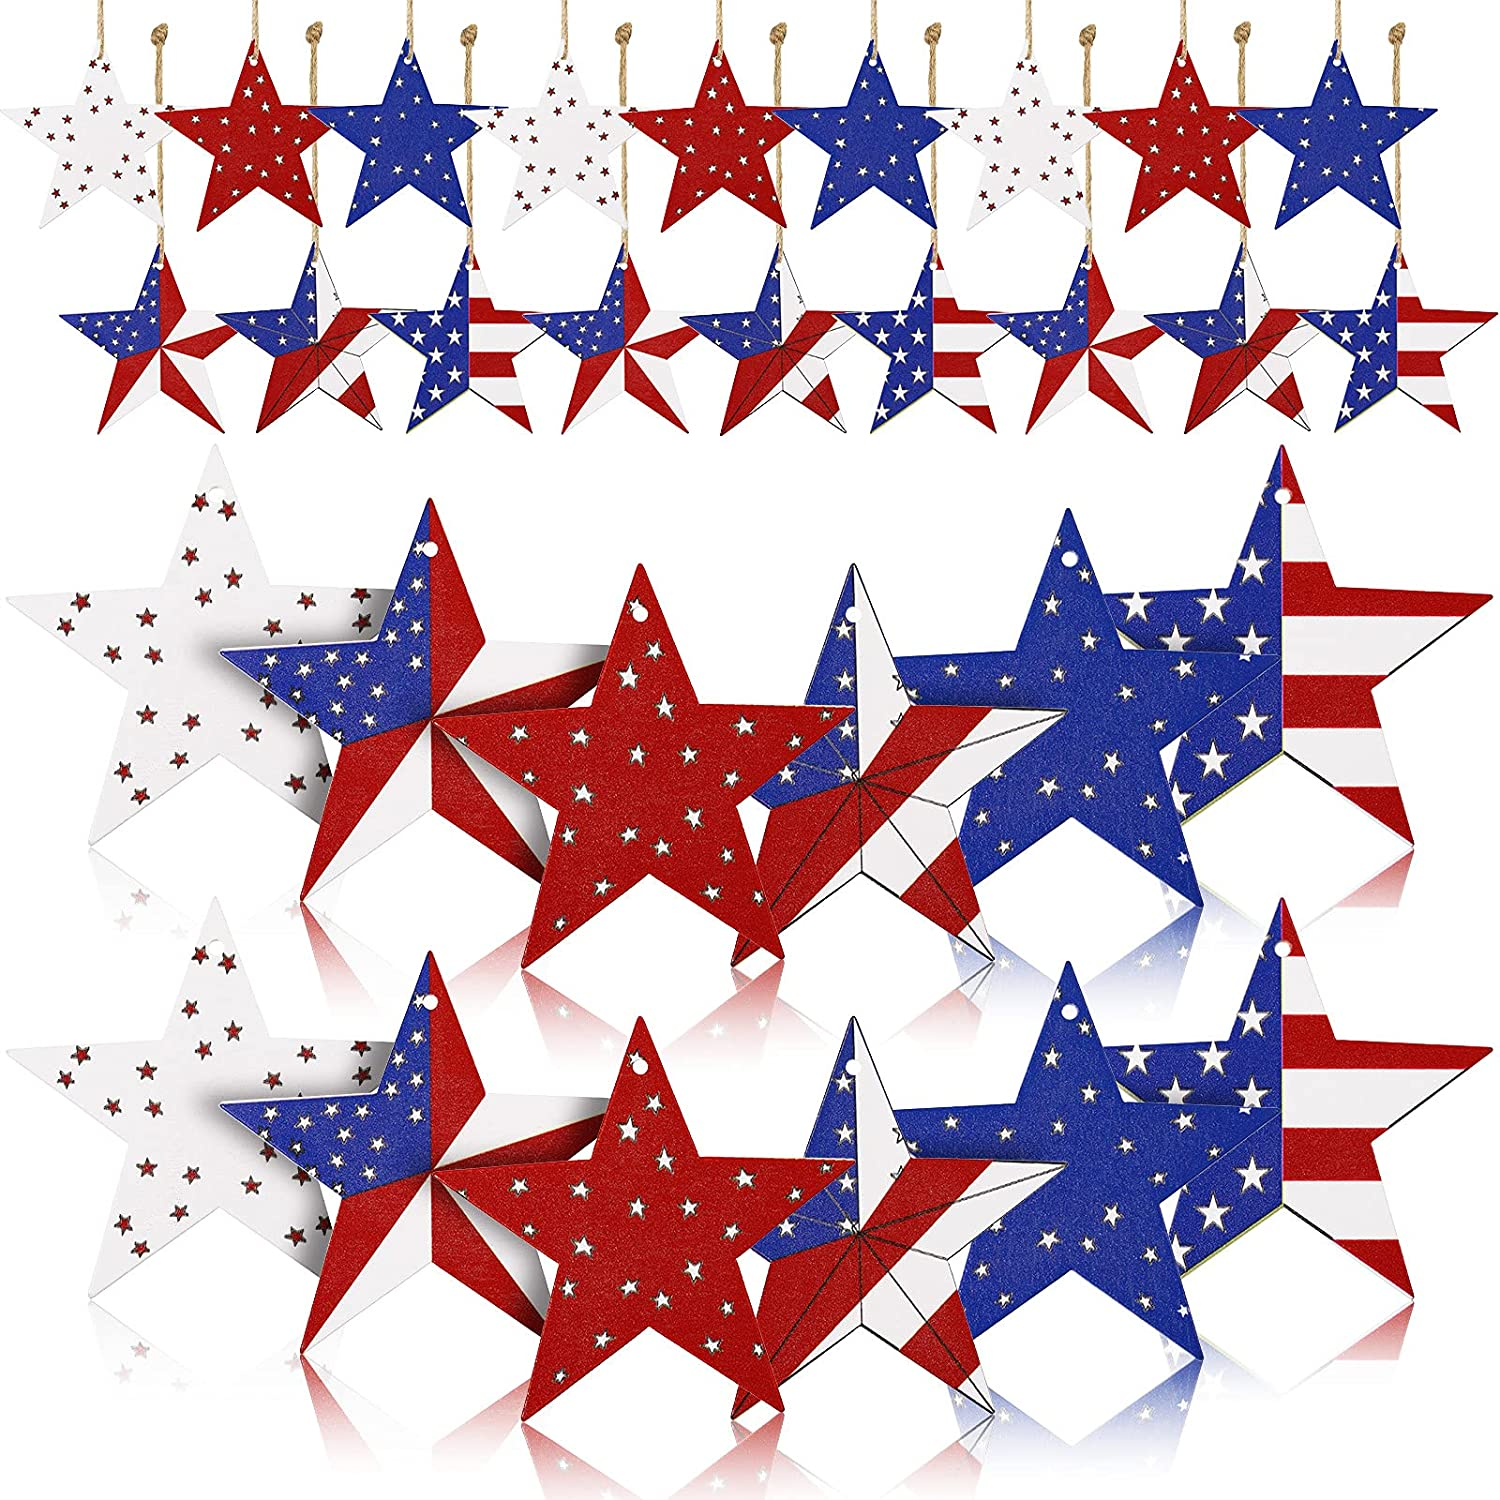 30 Pieces Independence Day Wooden Star Hanging Ornaments American Flag Stars Stripes Star Pendant Ornaments for 4th of July Home Rustic Patriotic Party Wall Decor, 2.8 Inch